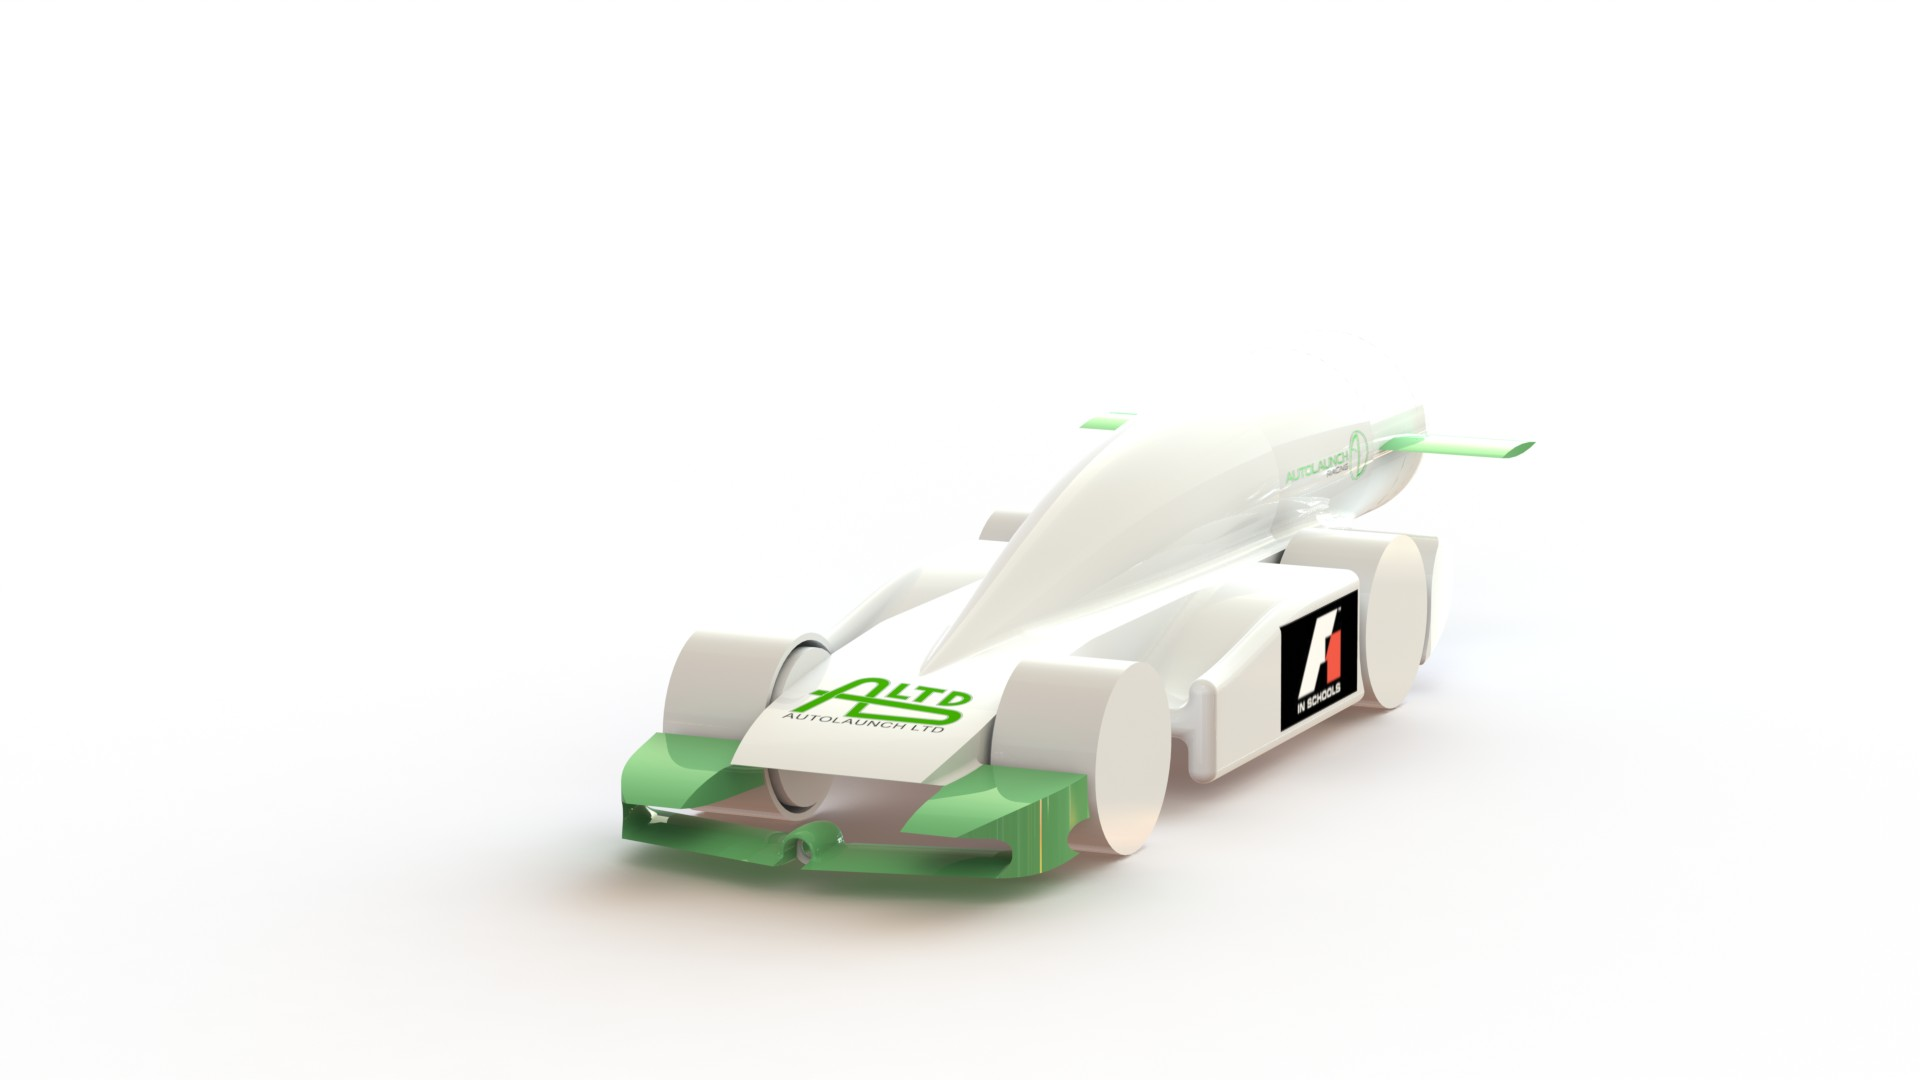 The design for Autolaunch Racing's 3D-printed car